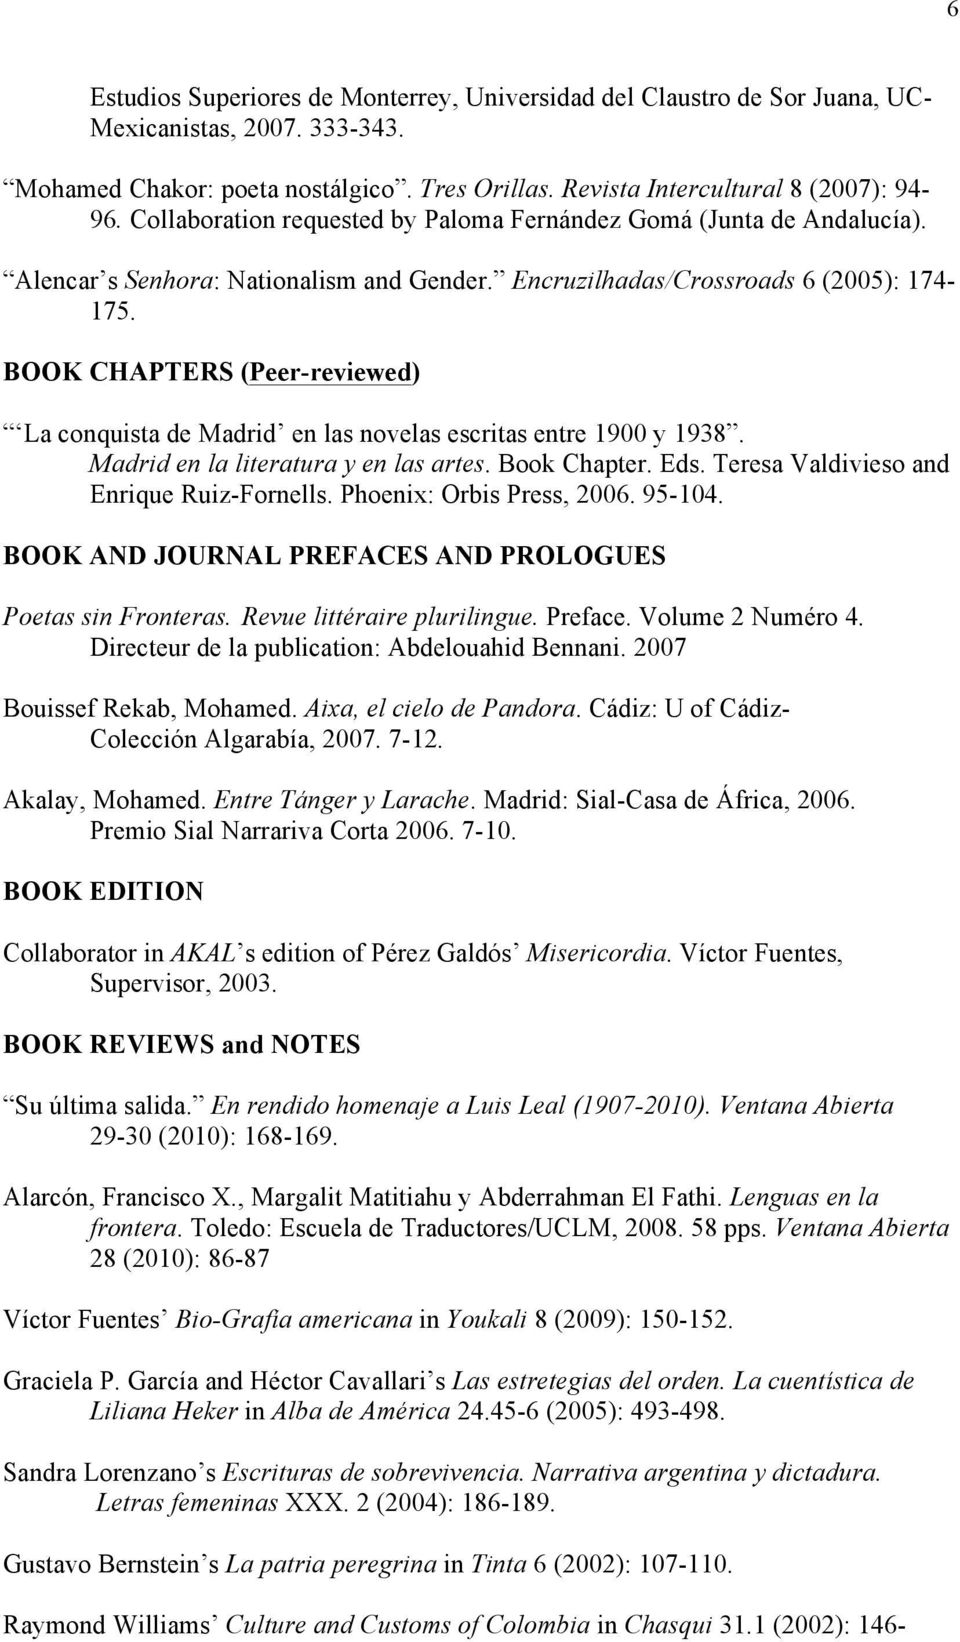 BOOK CHAPTERS (Peer-reviewed) La conquista de Madrid en las novelas escritas entre 1900 y 1938. Madrid en la literatura y en las artes. Book Chapter. Eds. Teresa Valdivieso and Enrique Ruiz-Fornells.